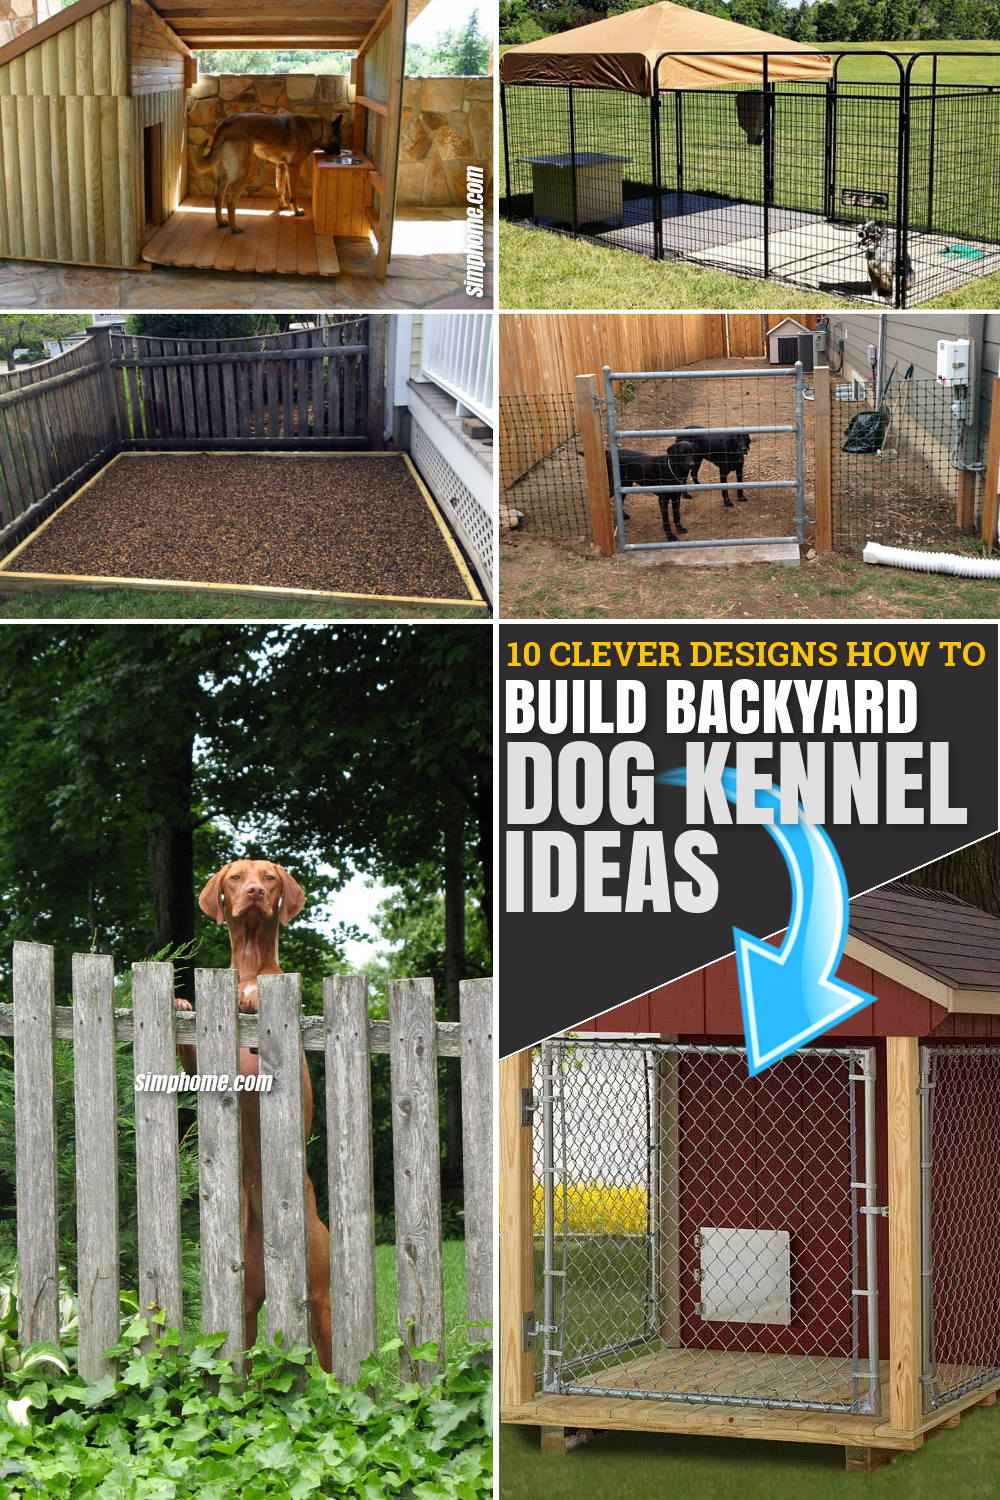 SIMPHOME.COM 10 Clever Designs of How to Build Backyard Dog Kennel Ideas FEATURED PINTEREST IMAGE